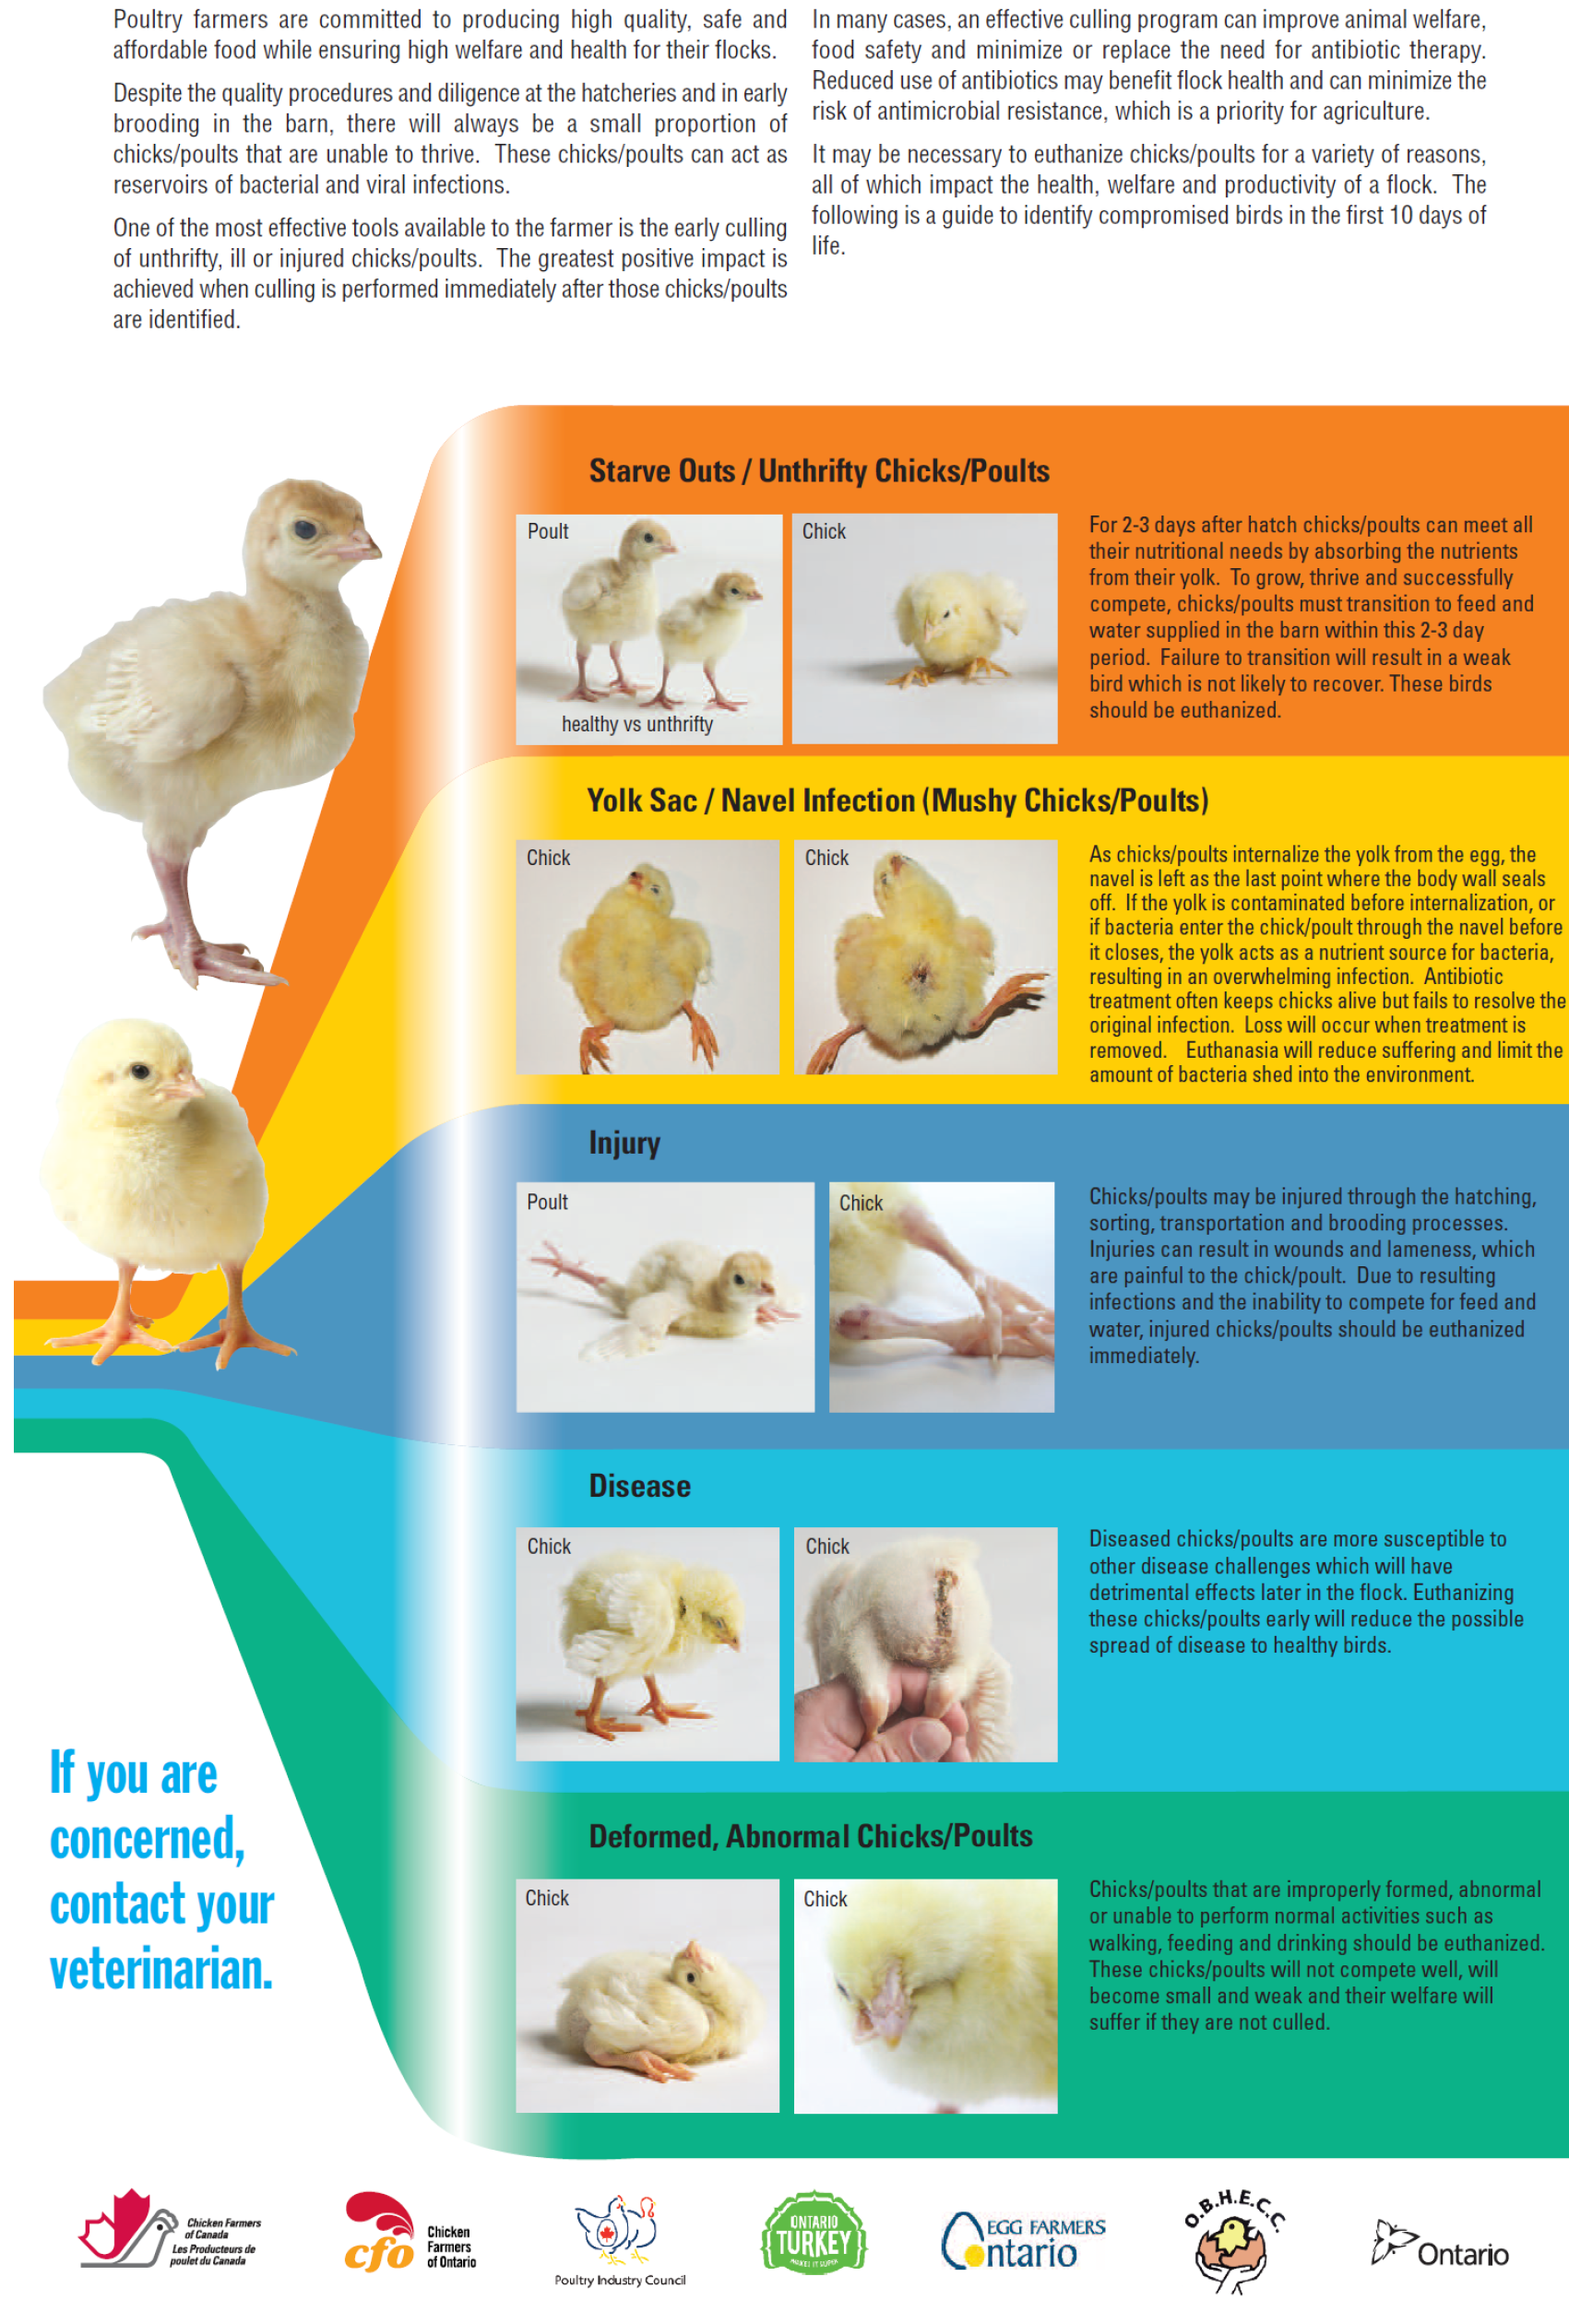 National Farm Animal Care Council - Poultry Code of Practice